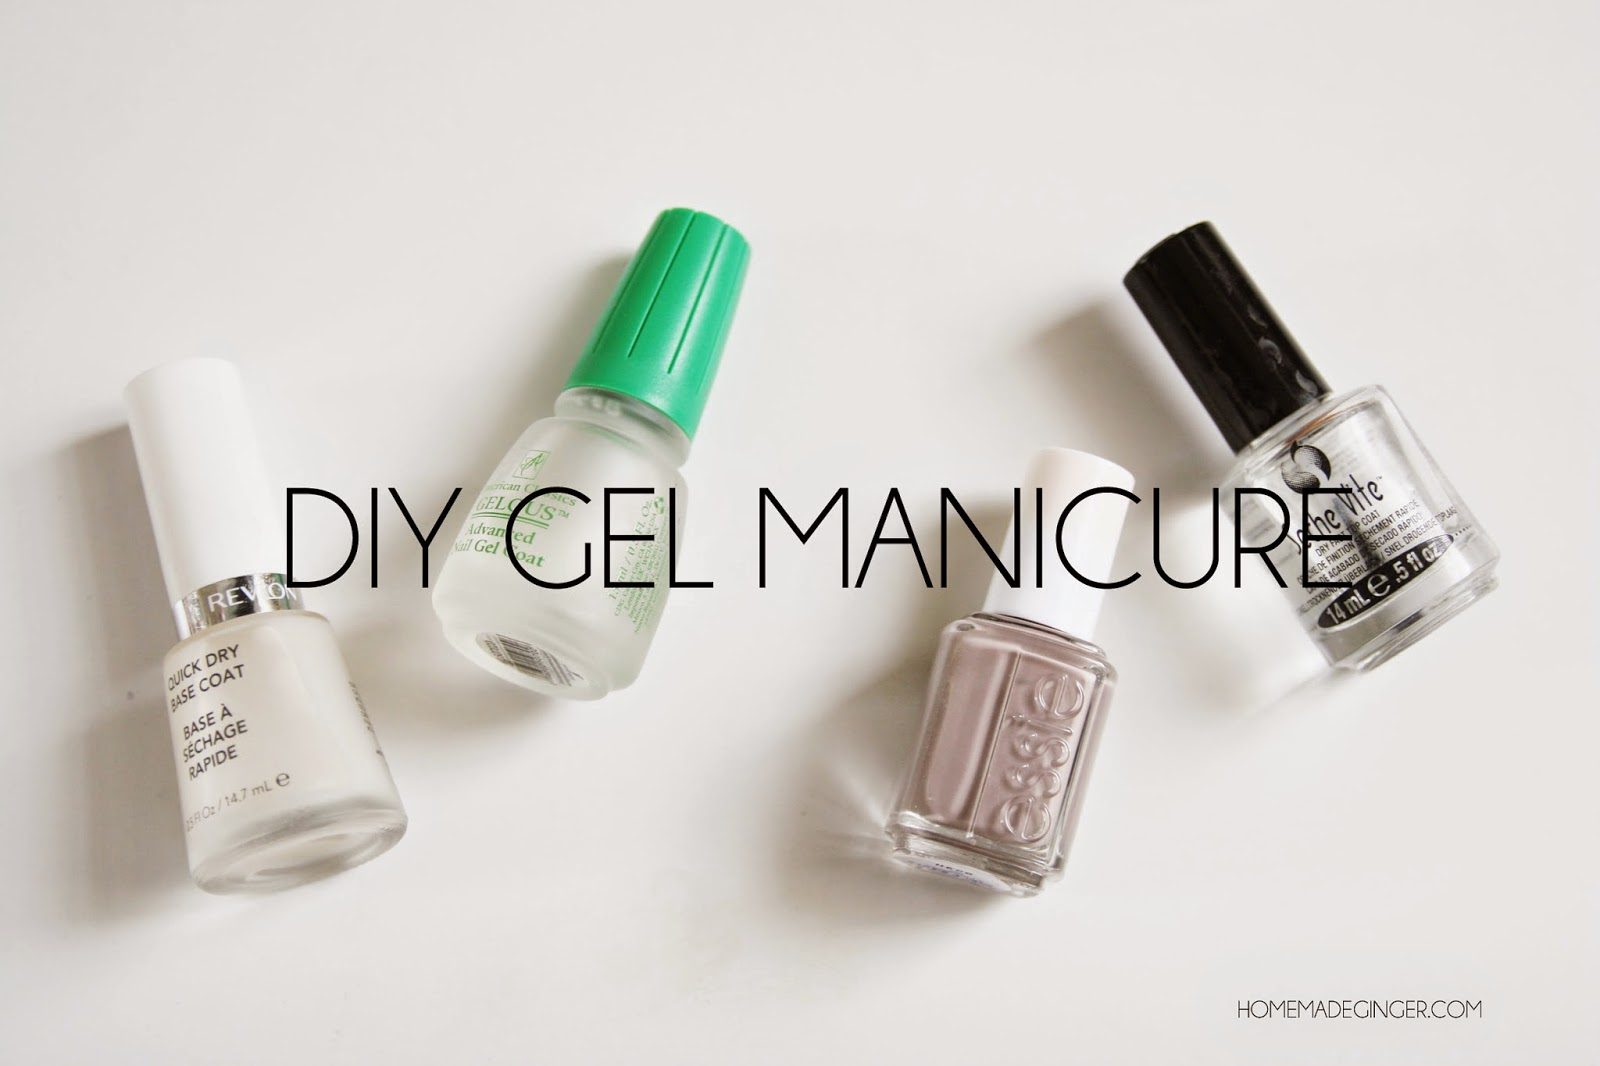 homemade ginger: DIY Gel Manicure